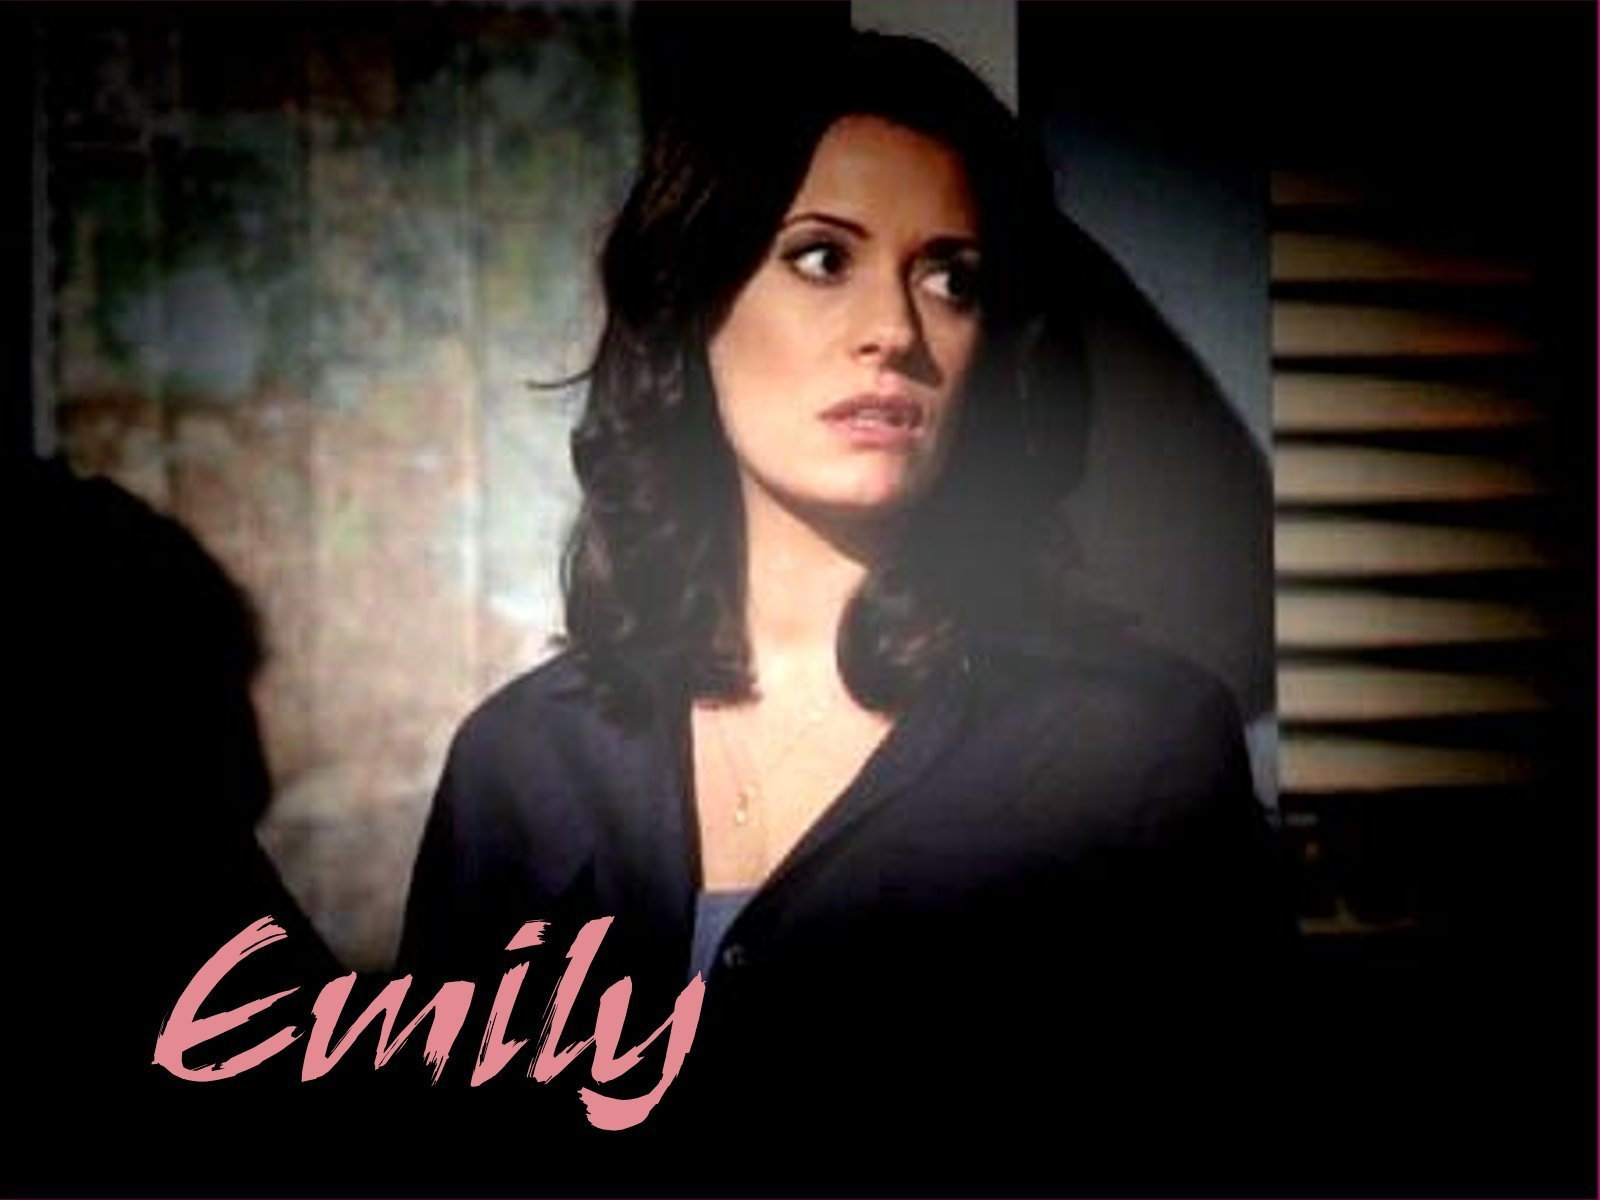 Emily Prentiss Leaving Criminal Minds http://kootation.com/prentiss-criminal-minds-wallpaper.html